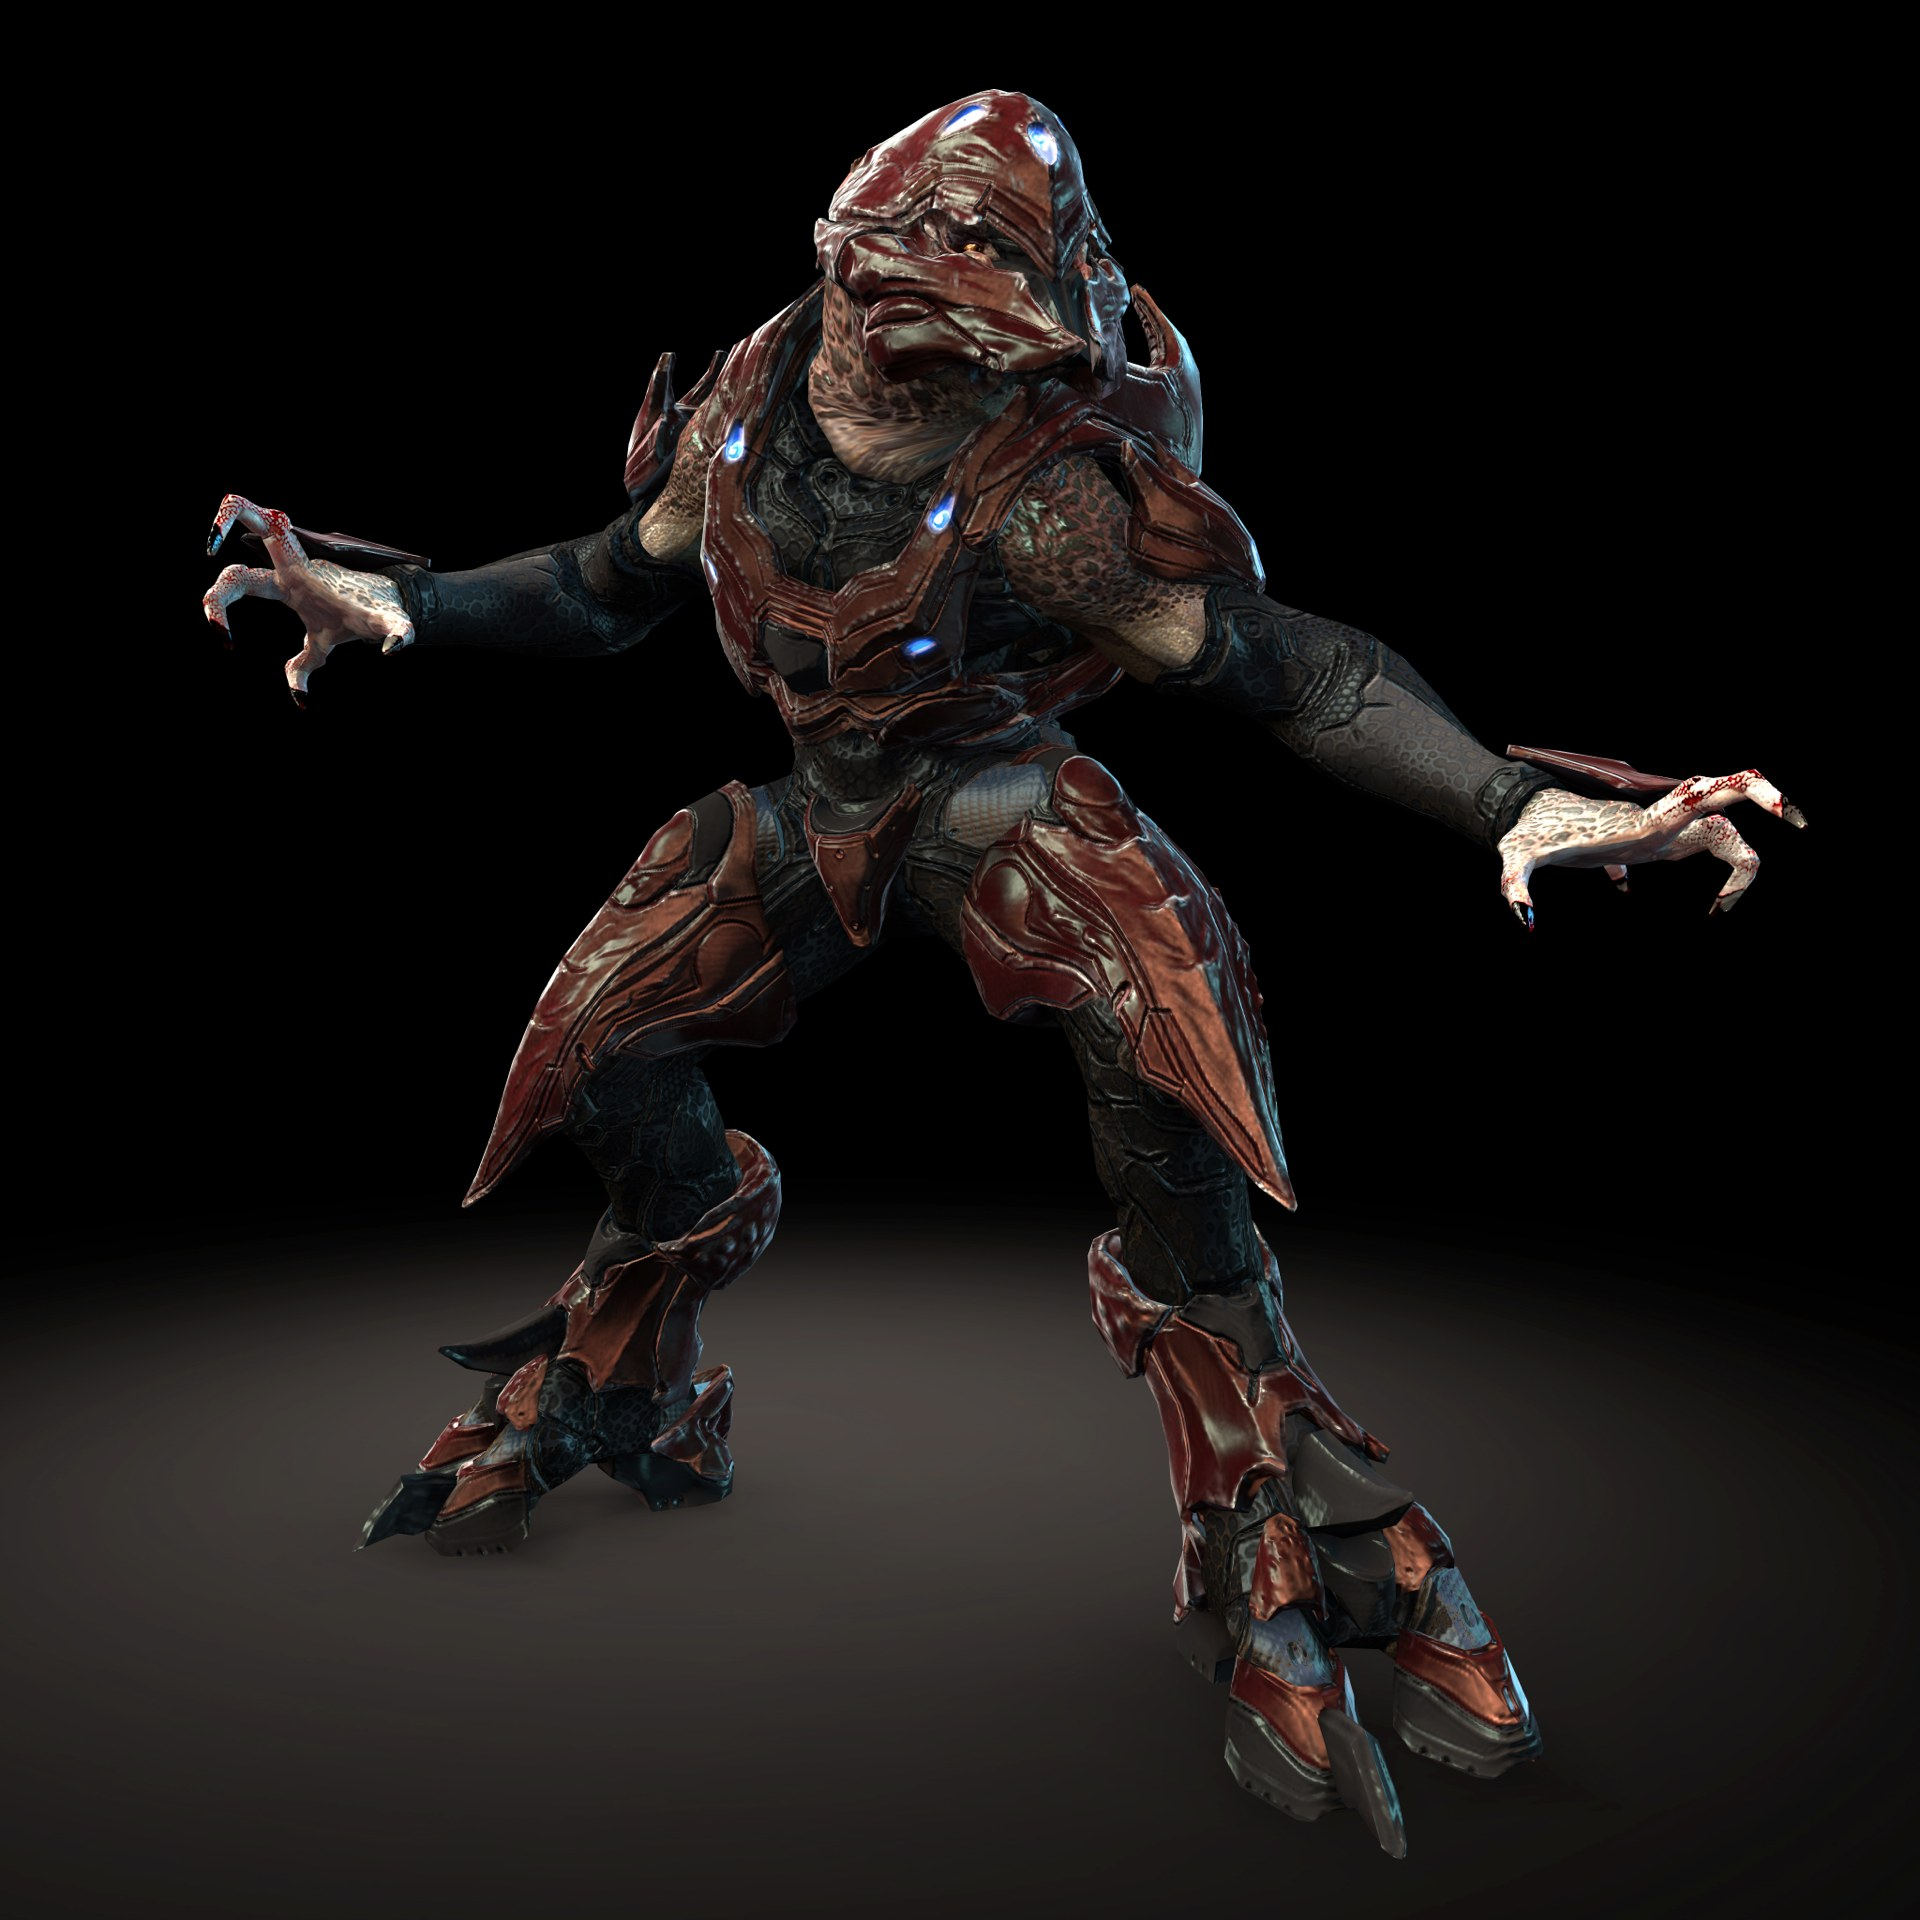 Halo 4 new leaked images reveals new enemies more just - Halo 4 pictures ...